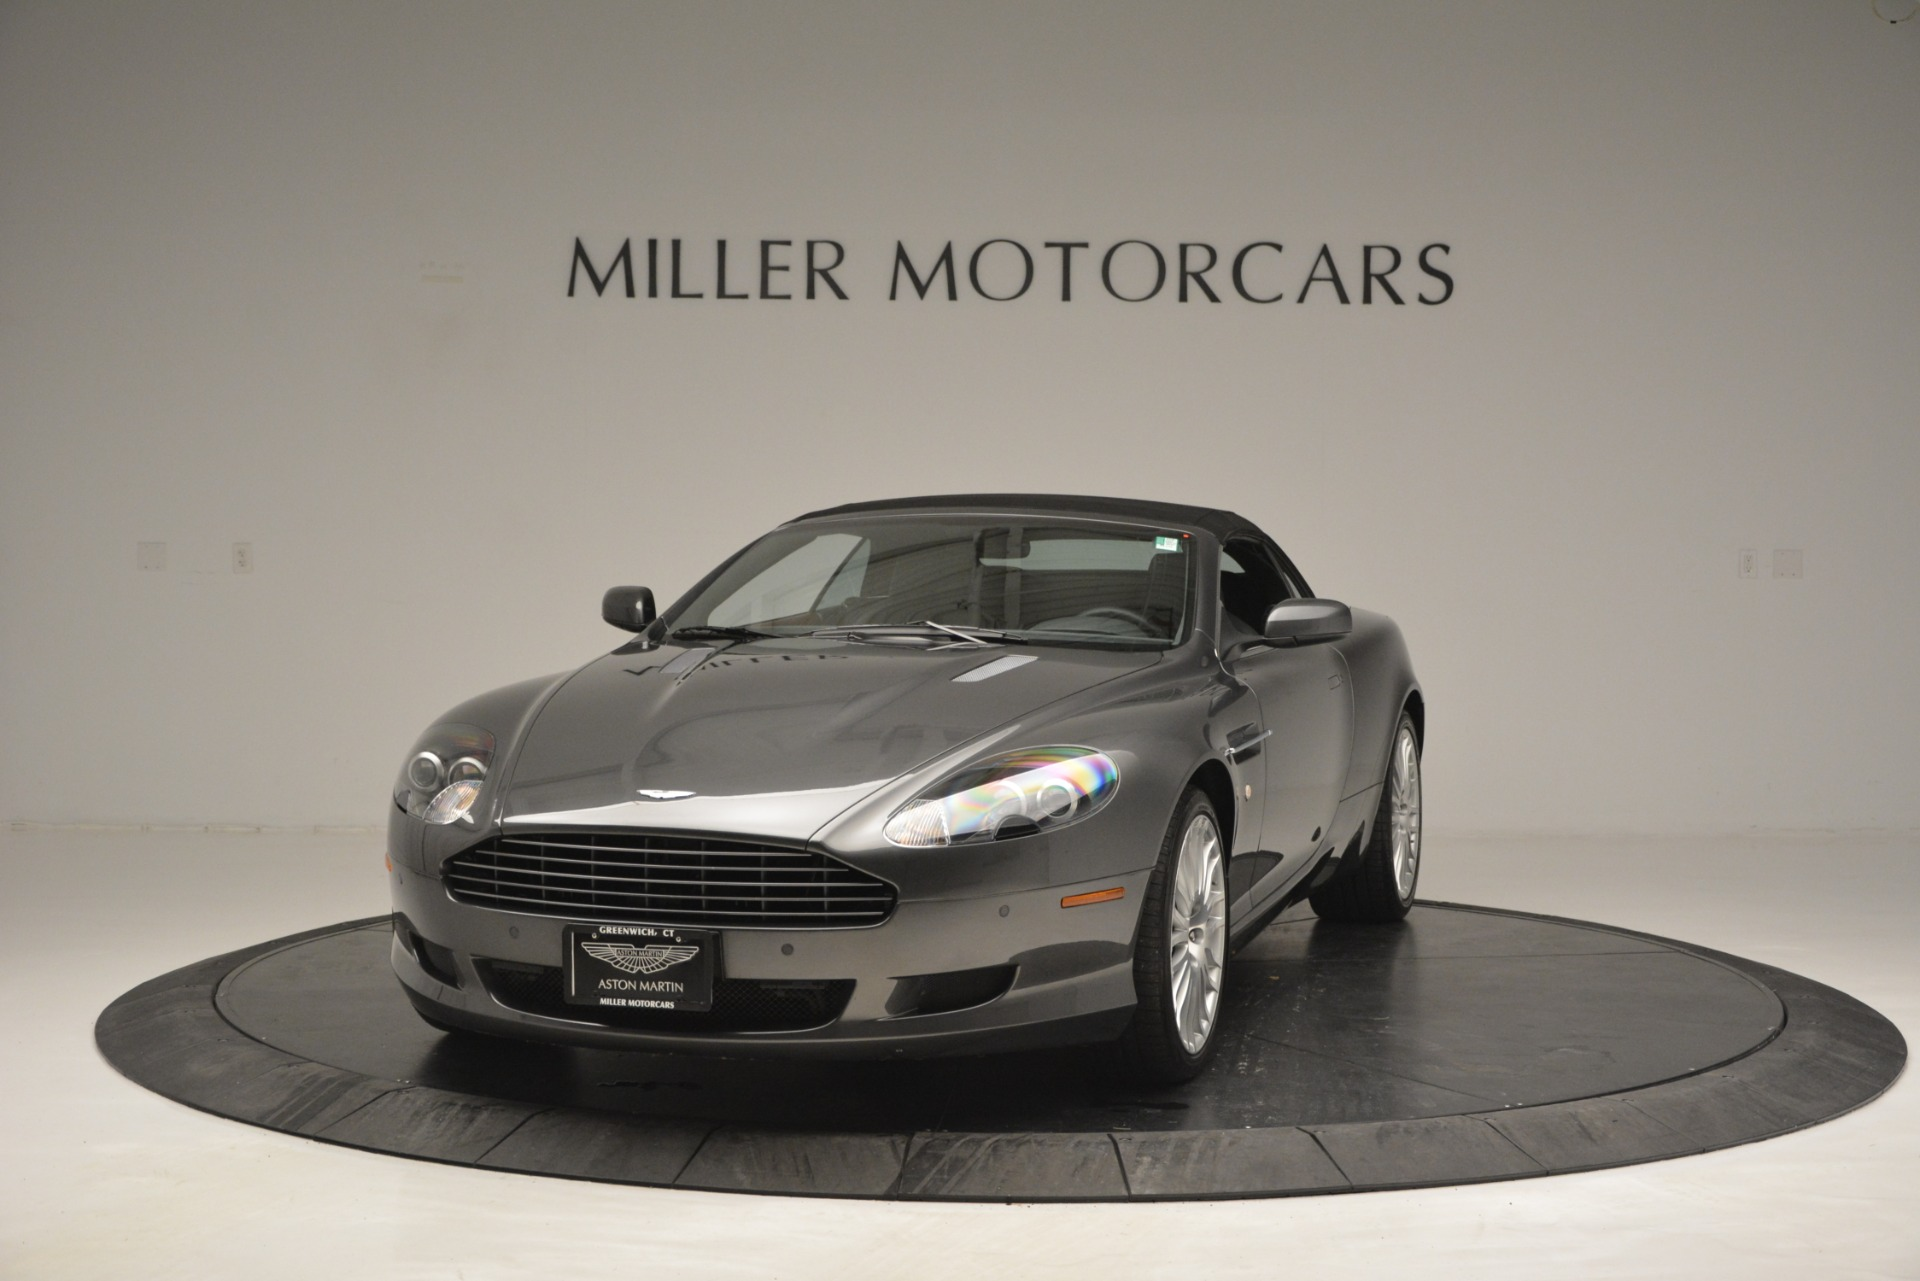 Used 2009 Aston Martin DB9 Convertible For Sale In Greenwich, CT 2930_p17